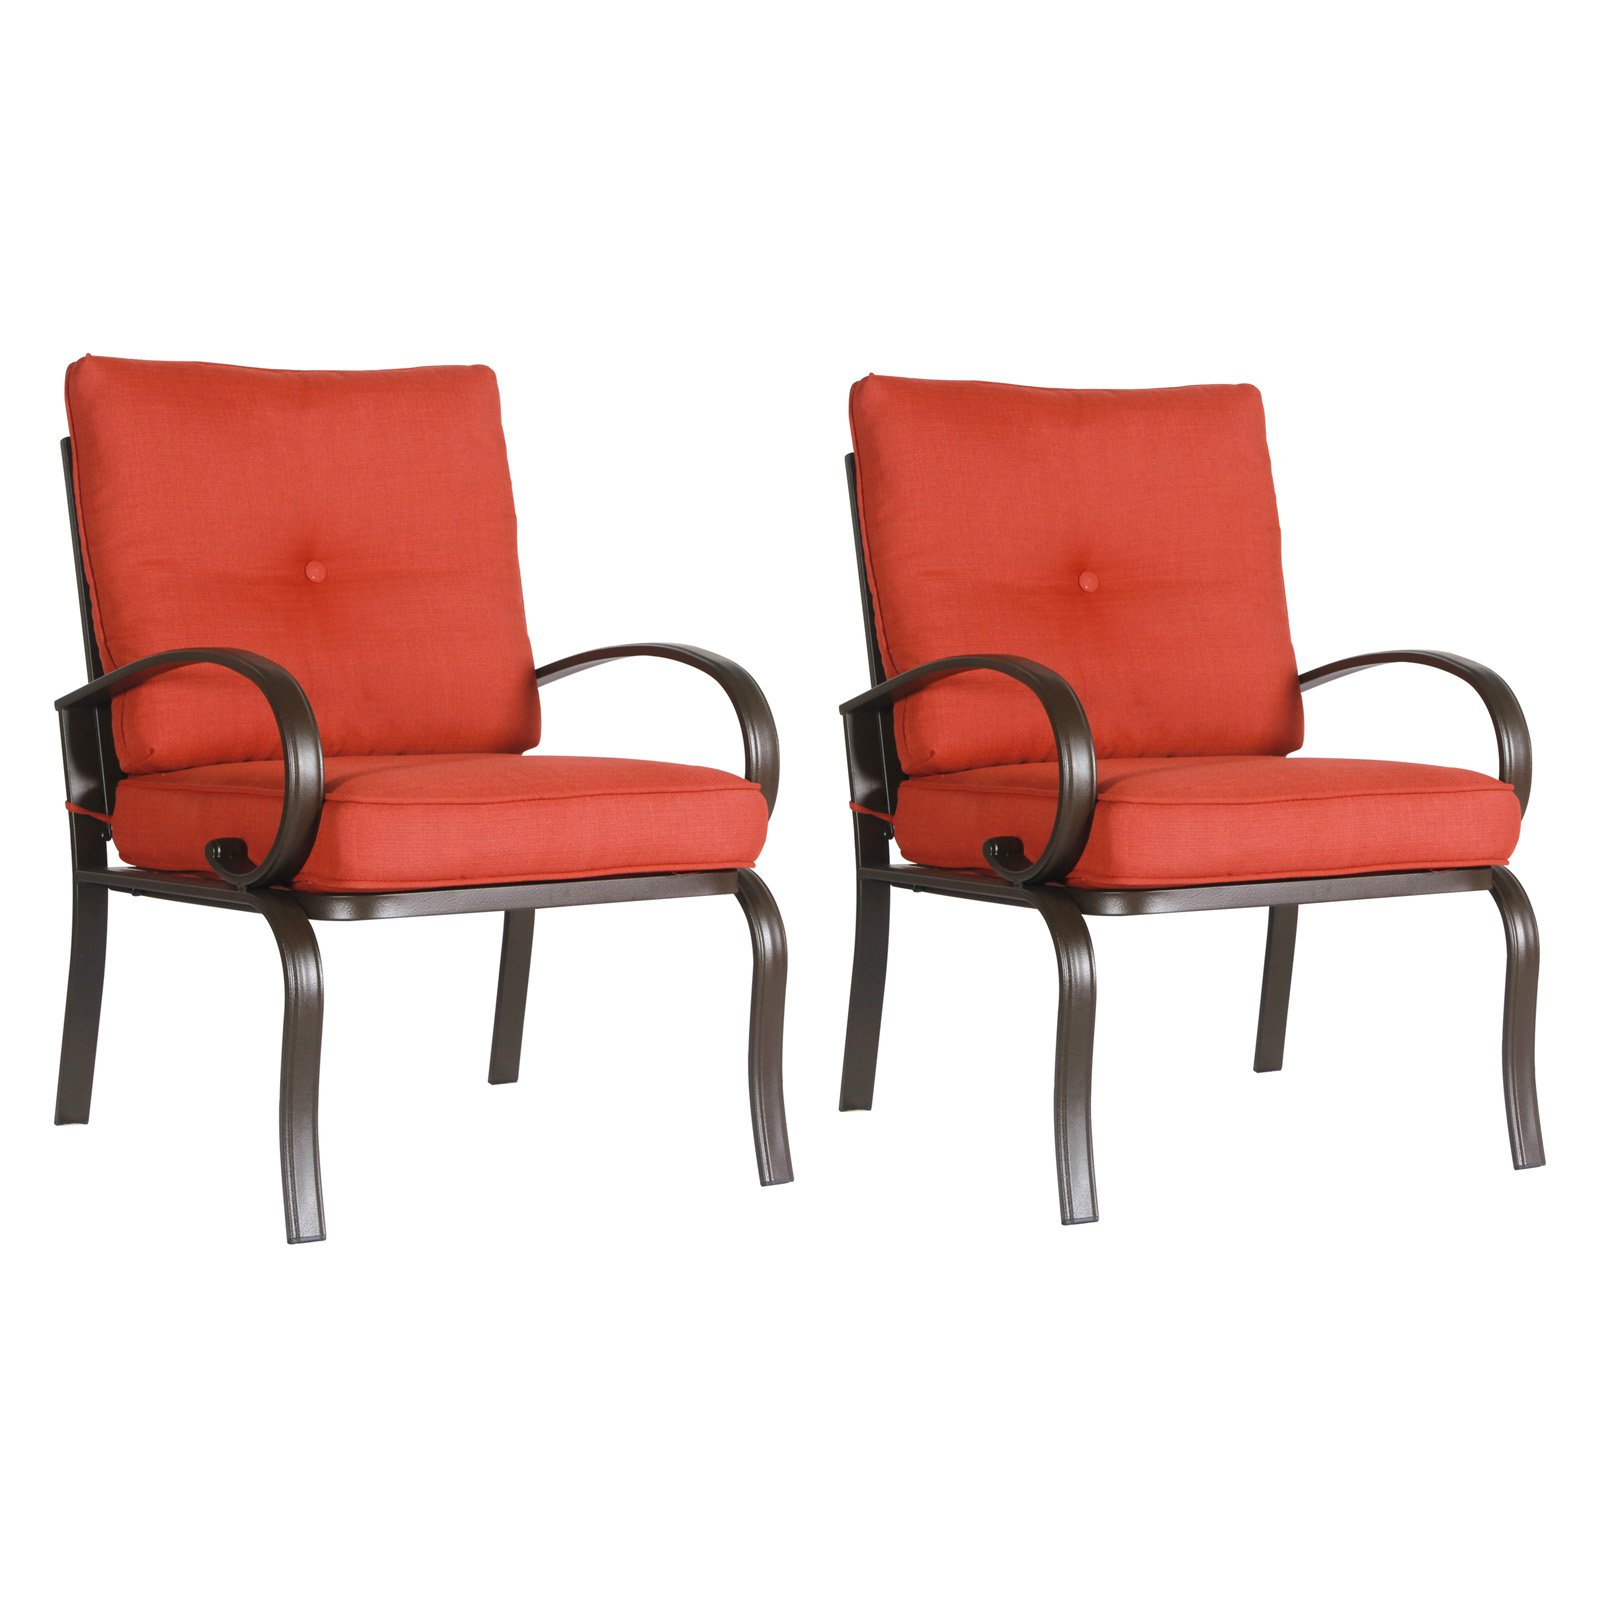 Cloud Mountain Wrought Iron Patio Club Dining Chair - Set of 2  sc 1 st  Walmart.com & Wrought Iron Patio Furniture